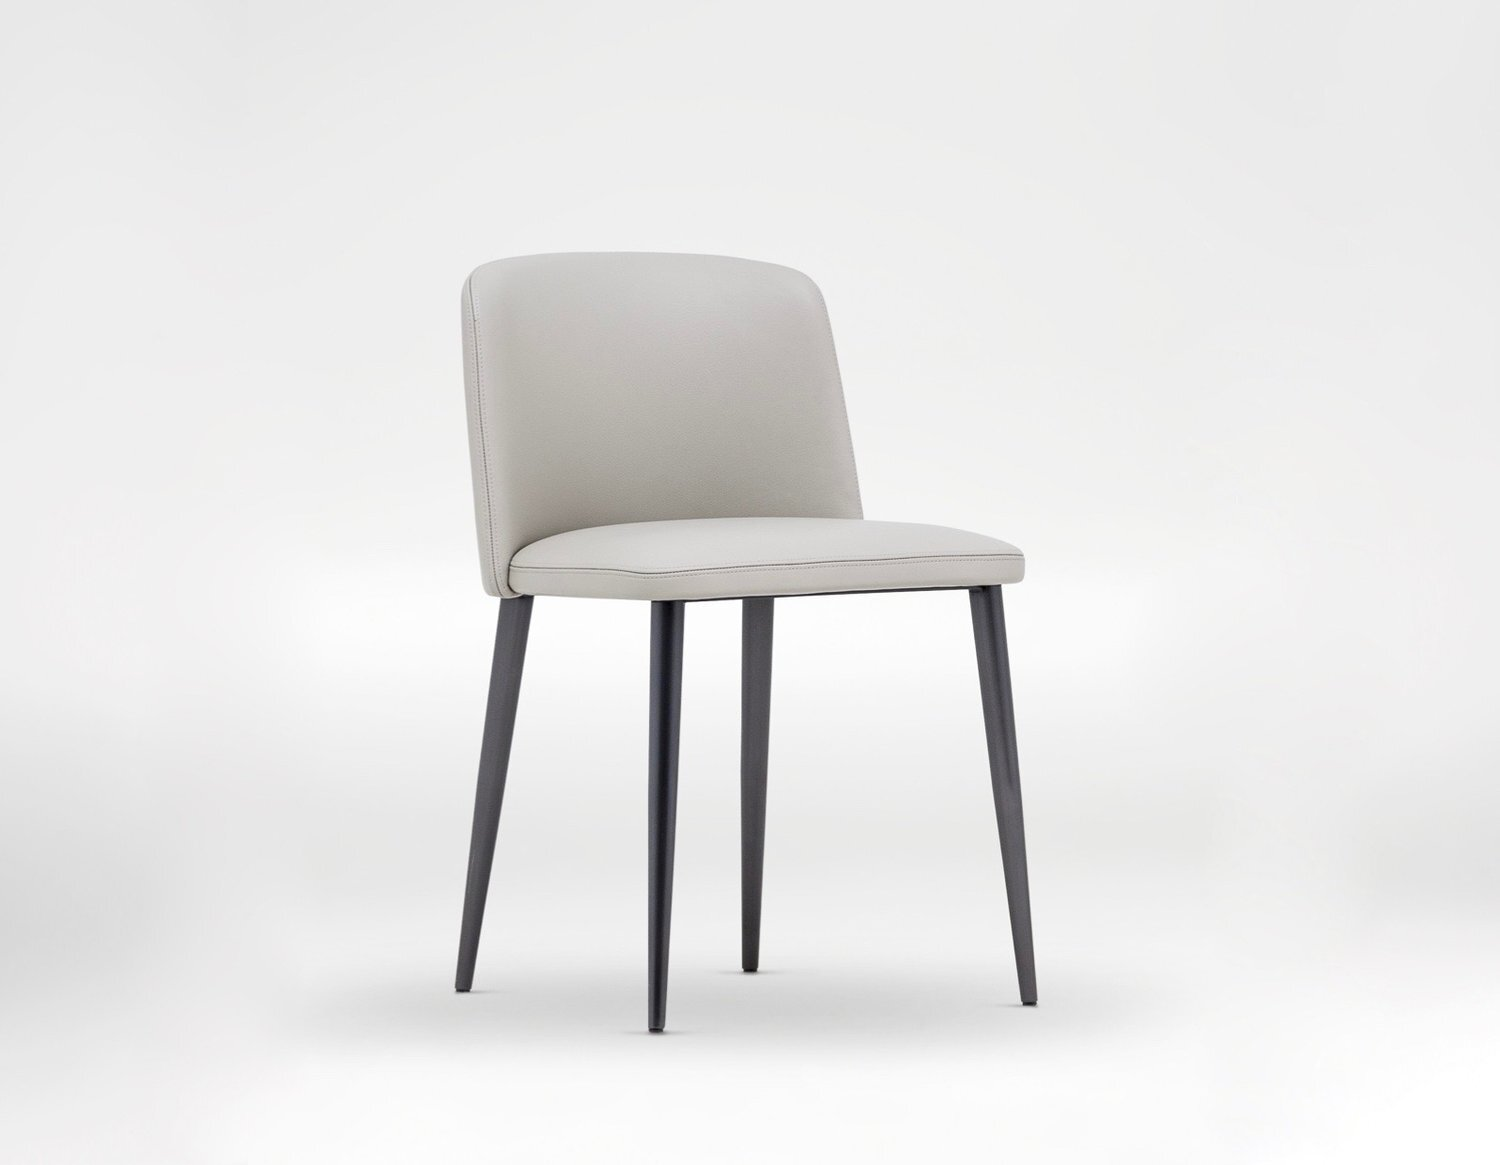 Ballet chair - Ultra-slick and streamlined define the Ballet Dining Chair.